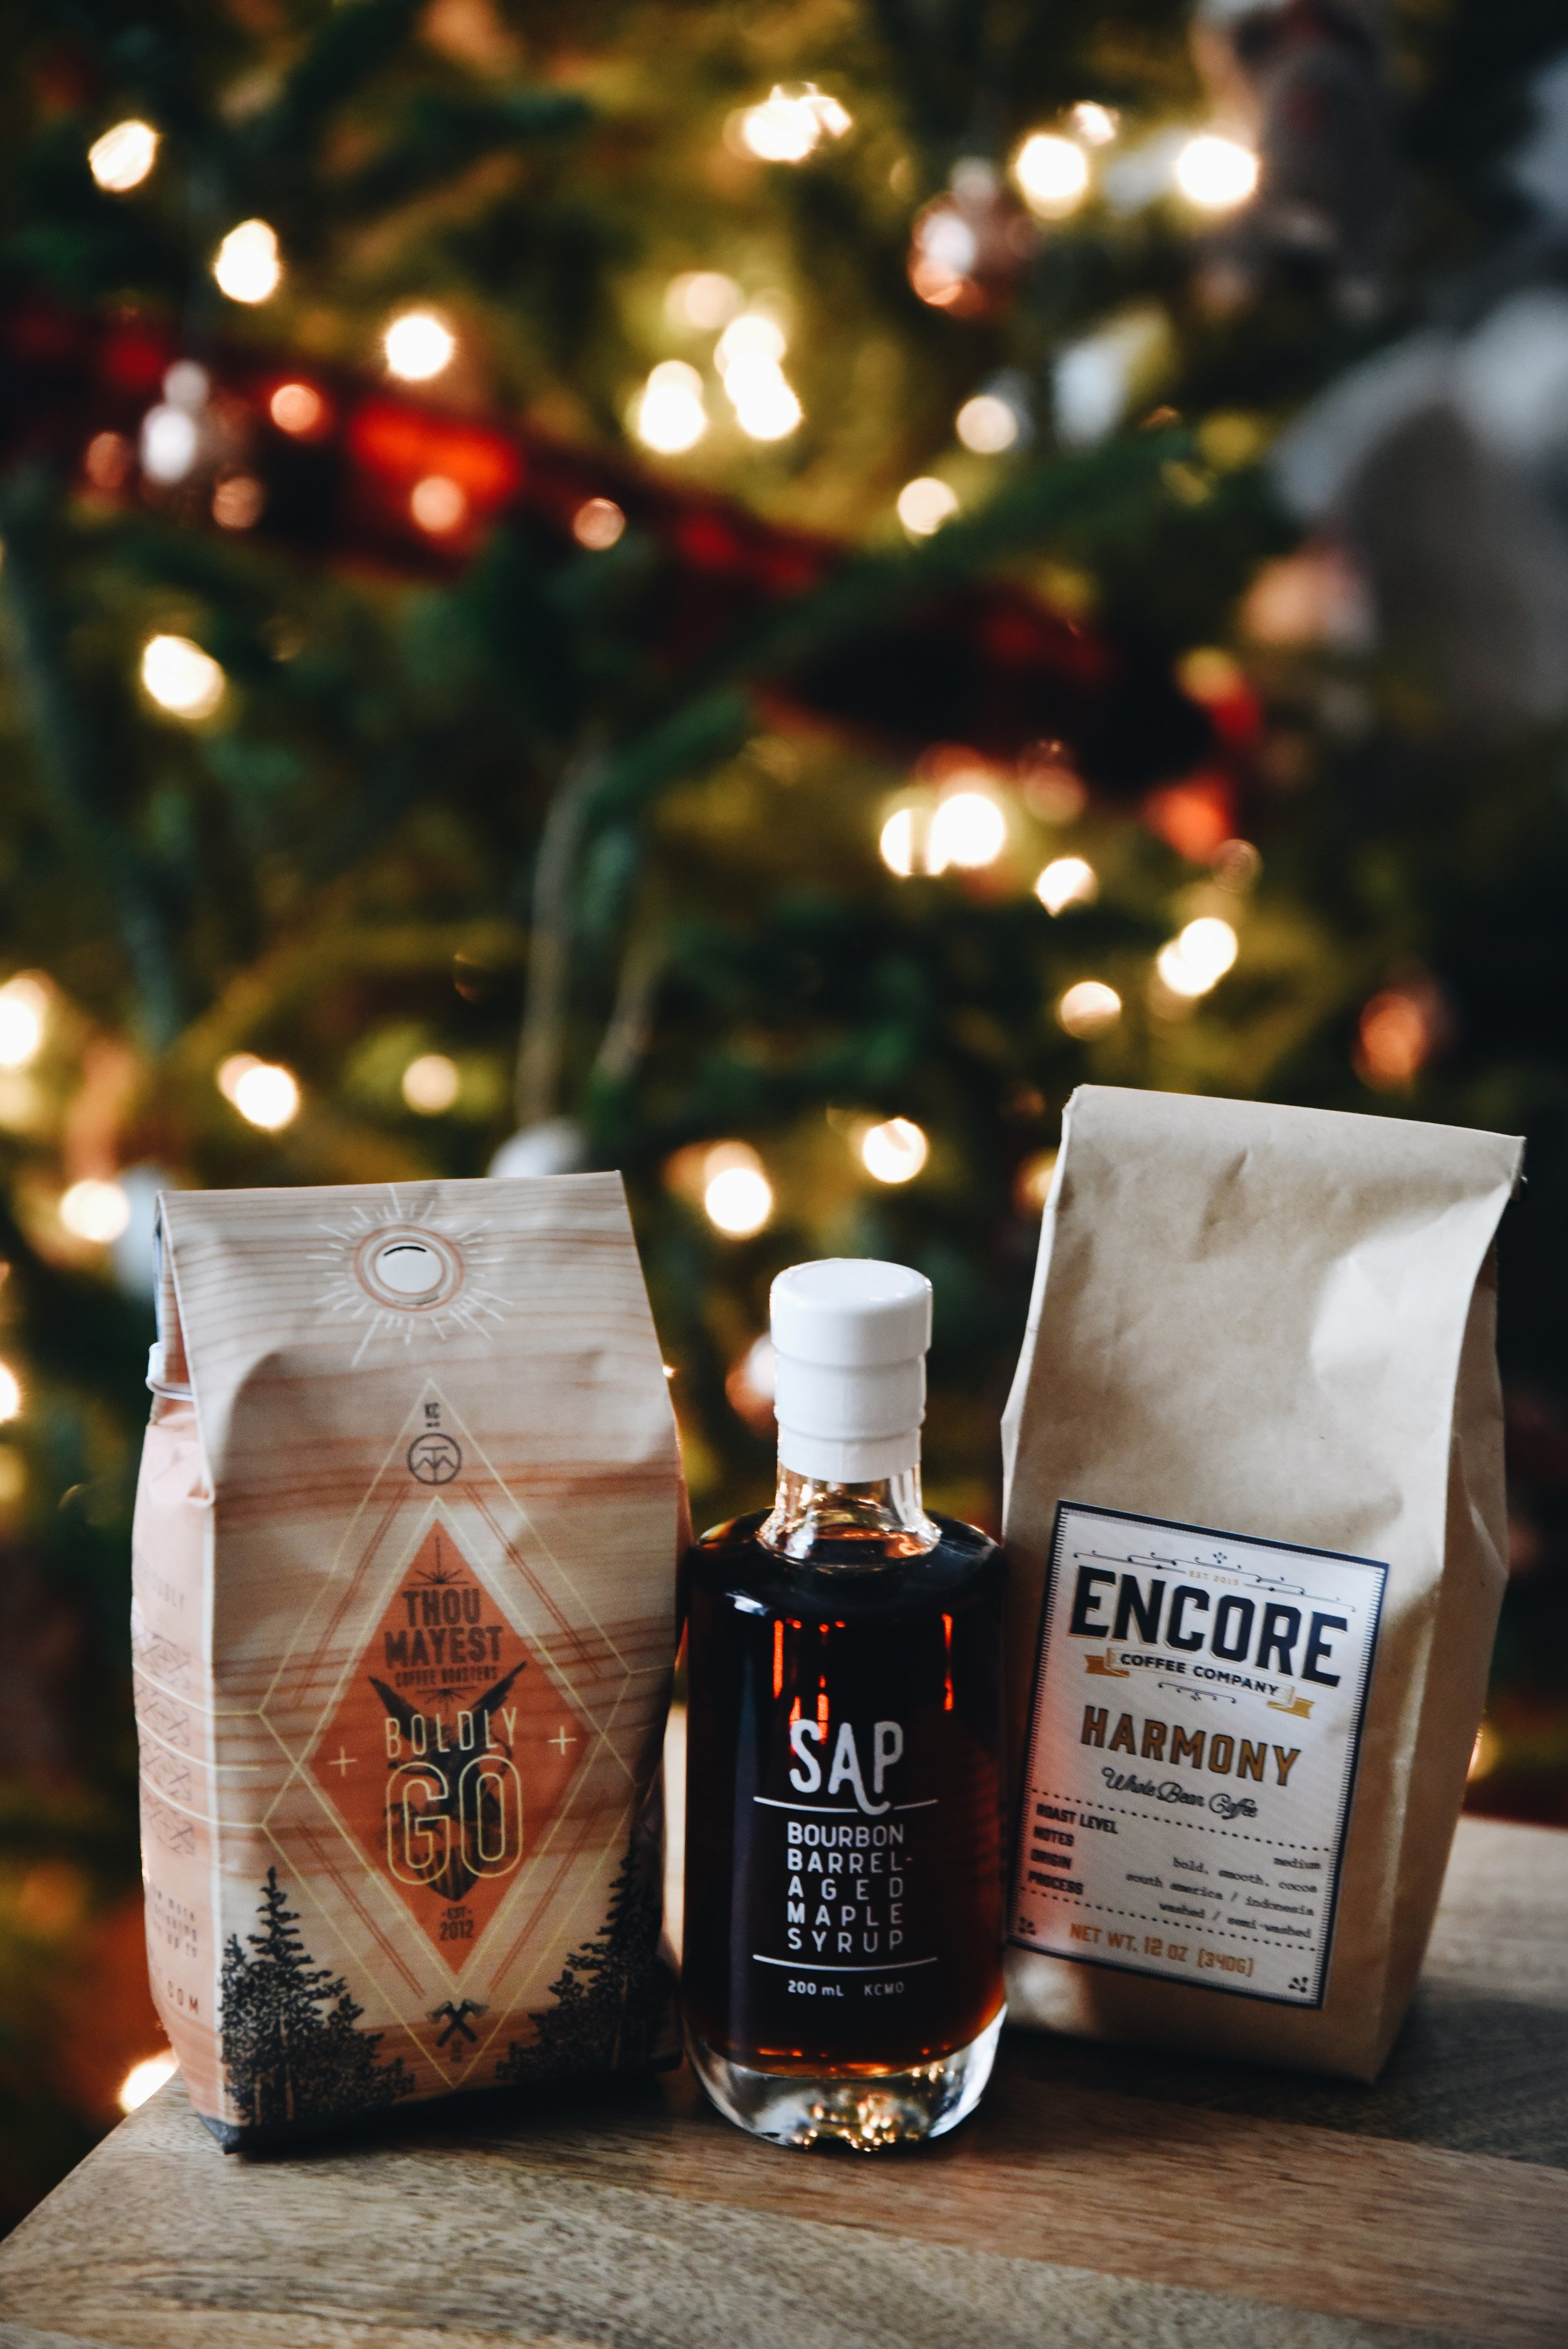 KC Coffee Subscription from Made in KC and SAP Bourbon Barrel-Aged Maple Syrup. All photos by Anna Petrow